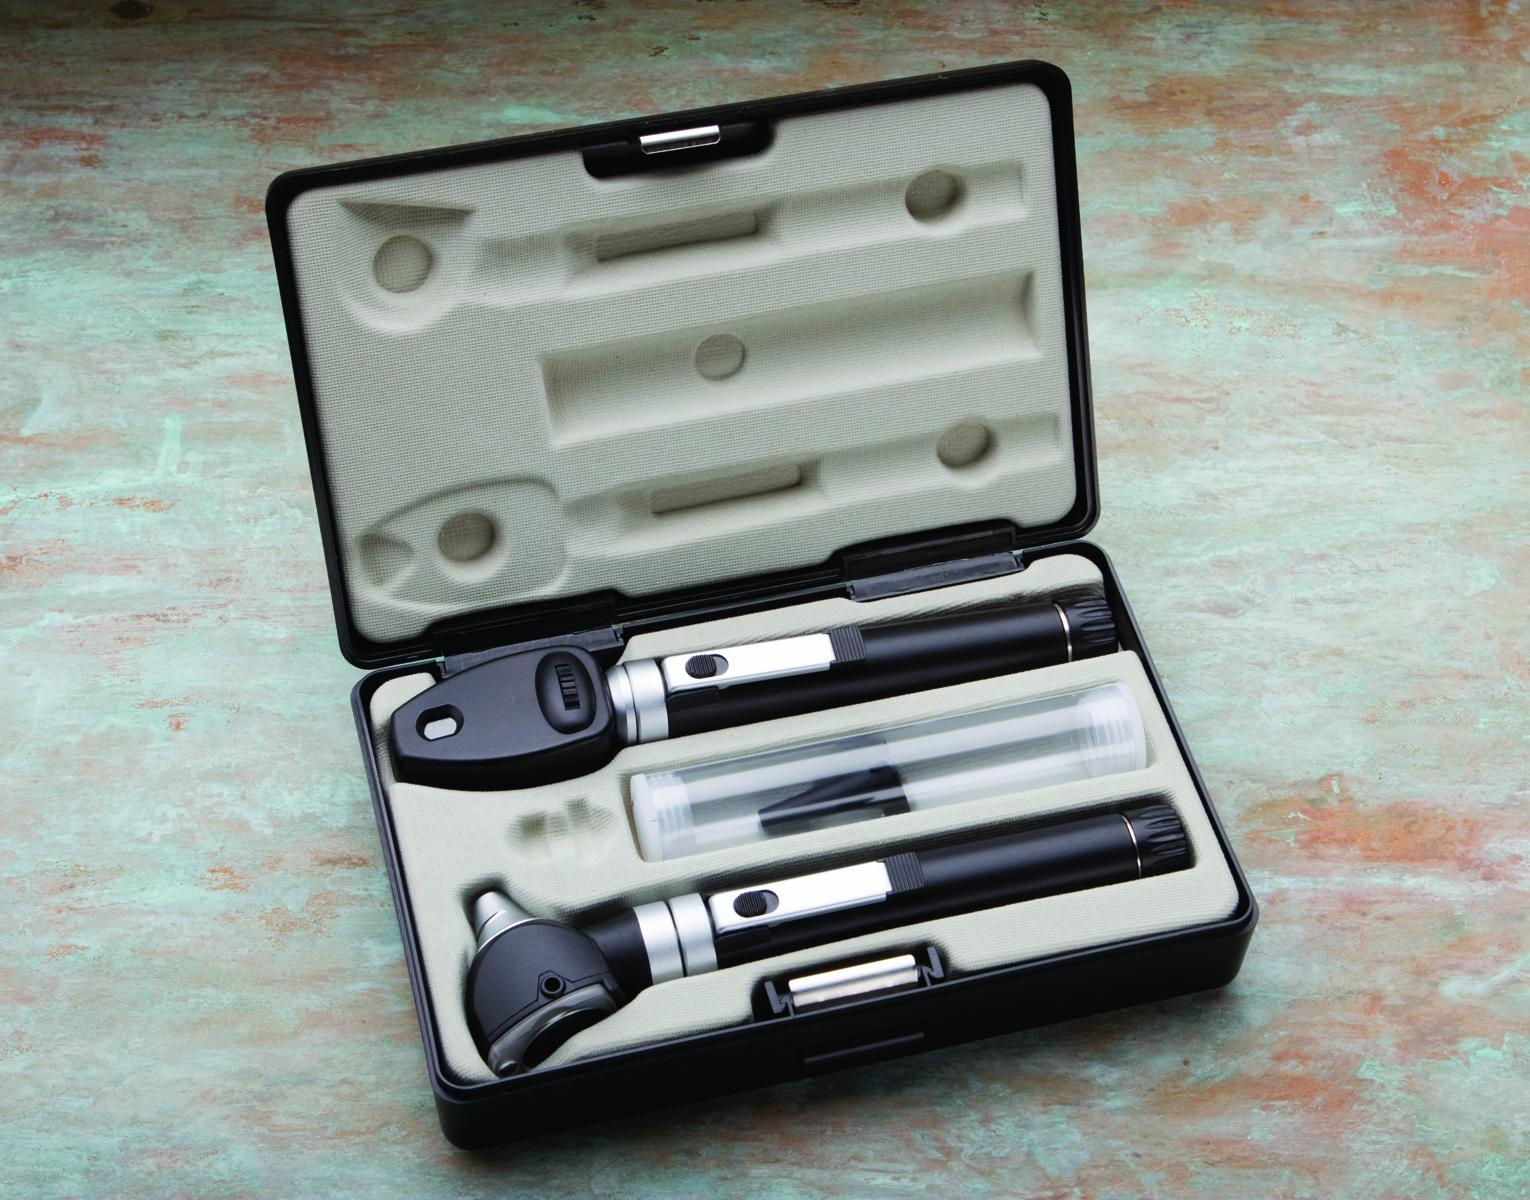 Pocket Otoscope/Opthalmoscope Set